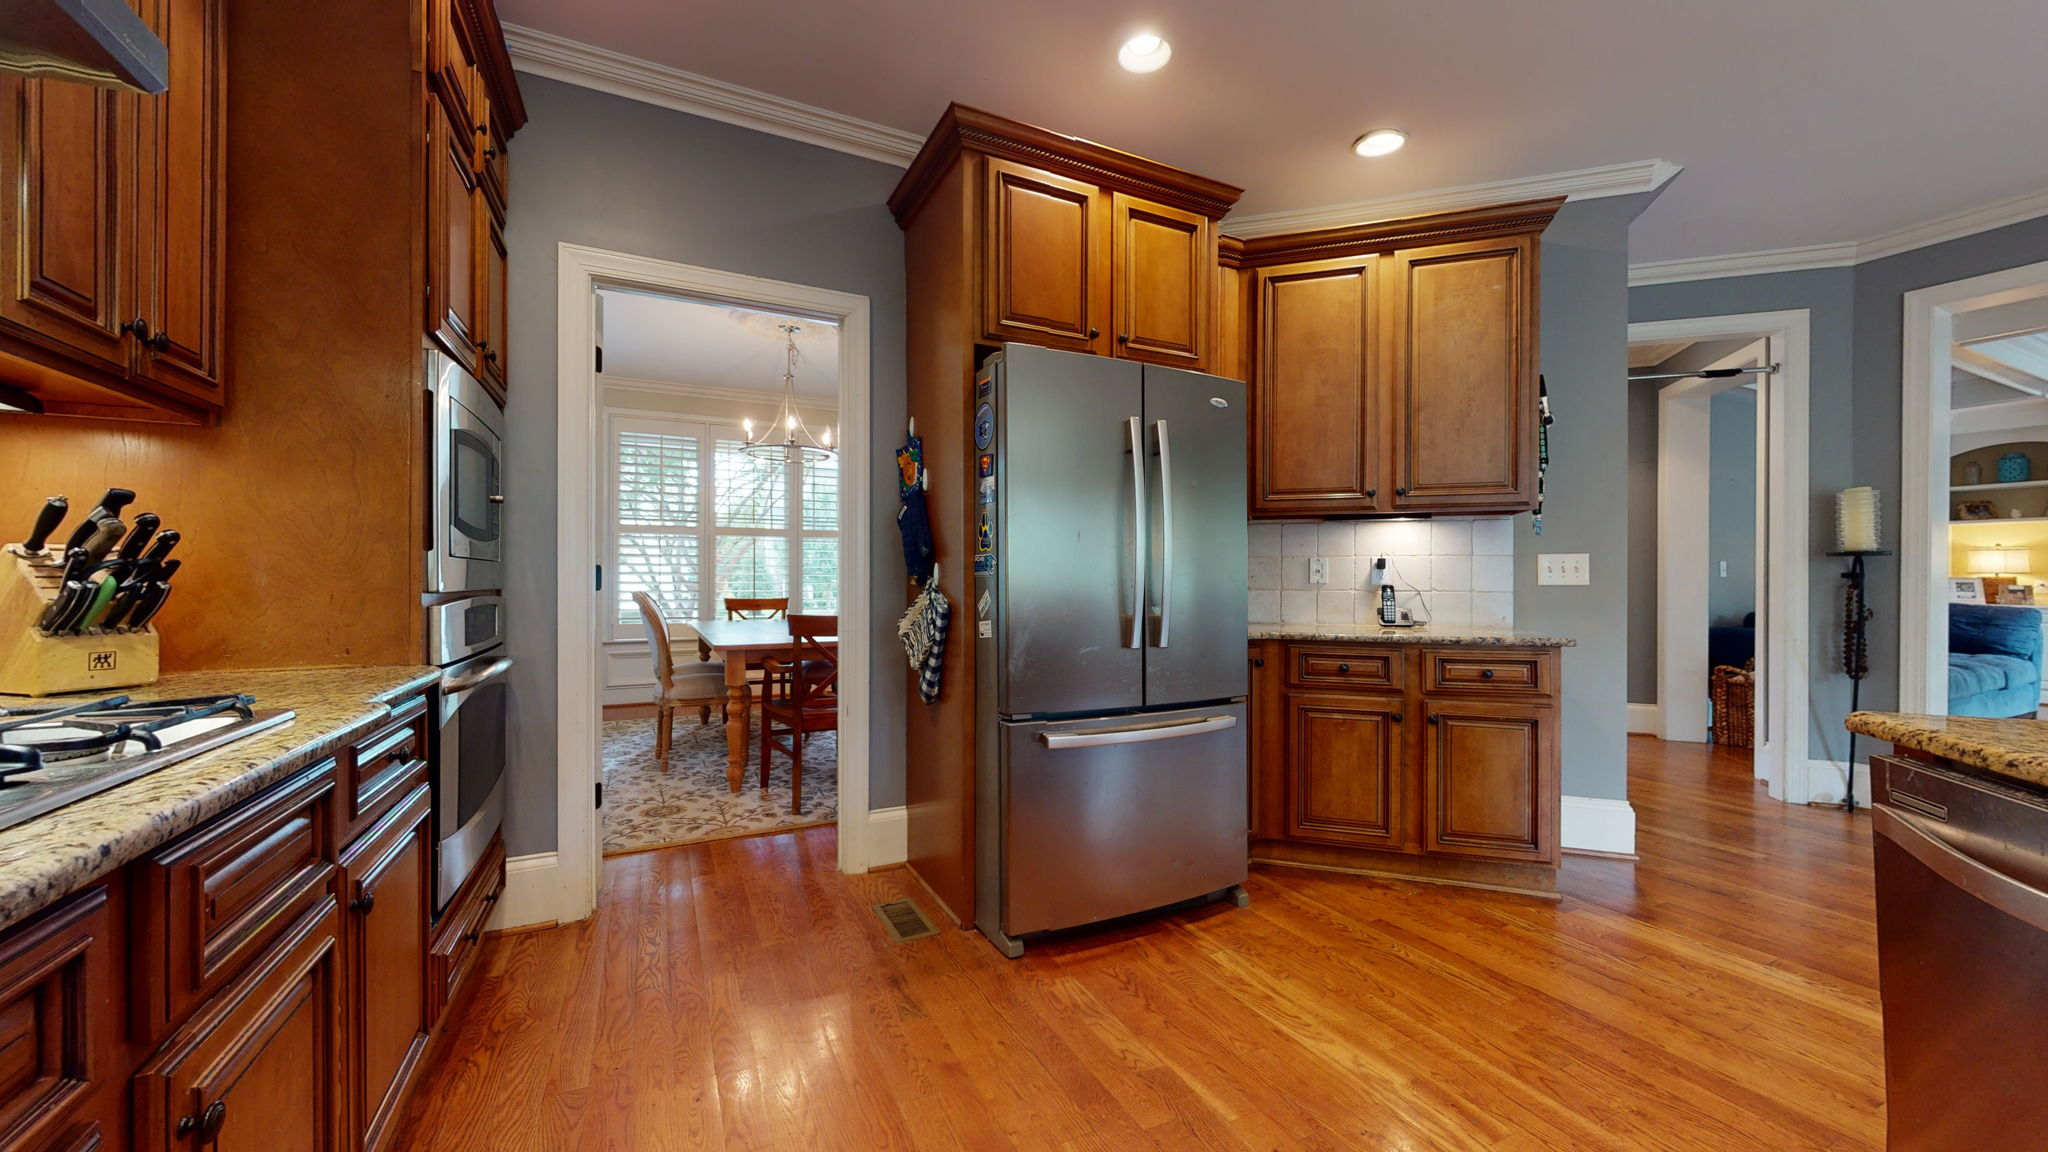 305 Russo Valley Dr, Cary, NC 27519, USA Photo 24